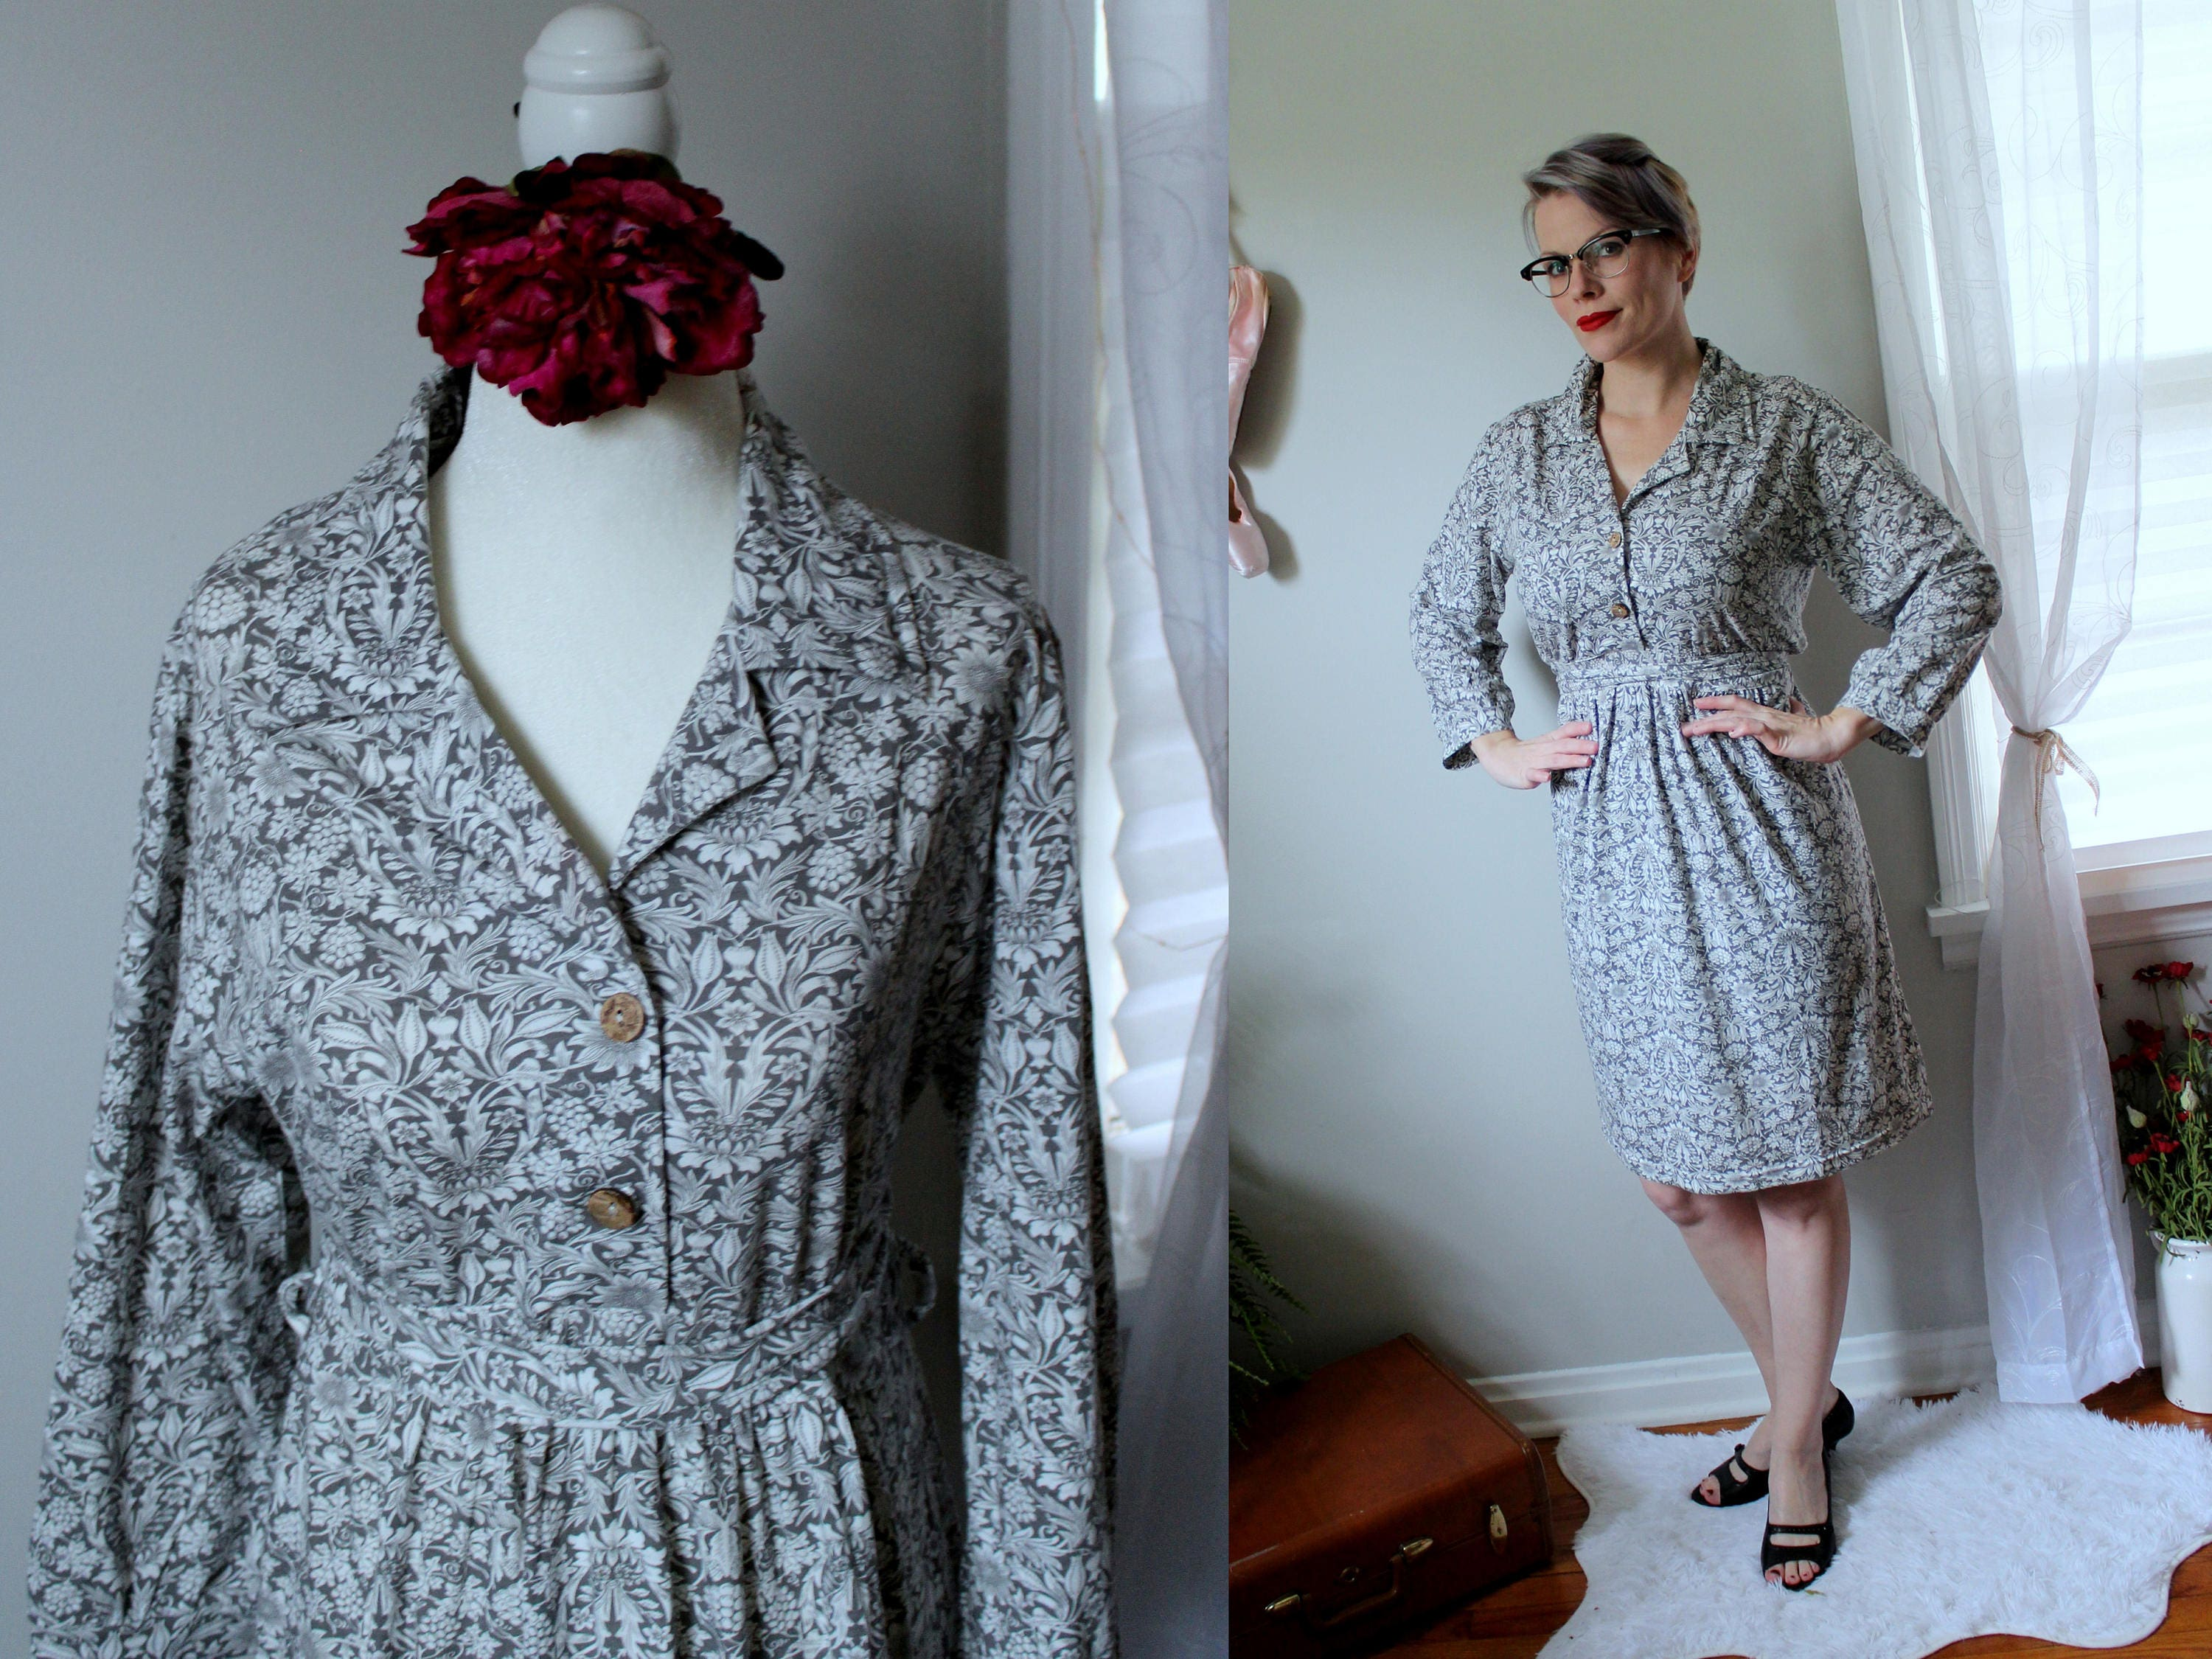 Floral Explosion Day Dress Dove Grey Dress With White